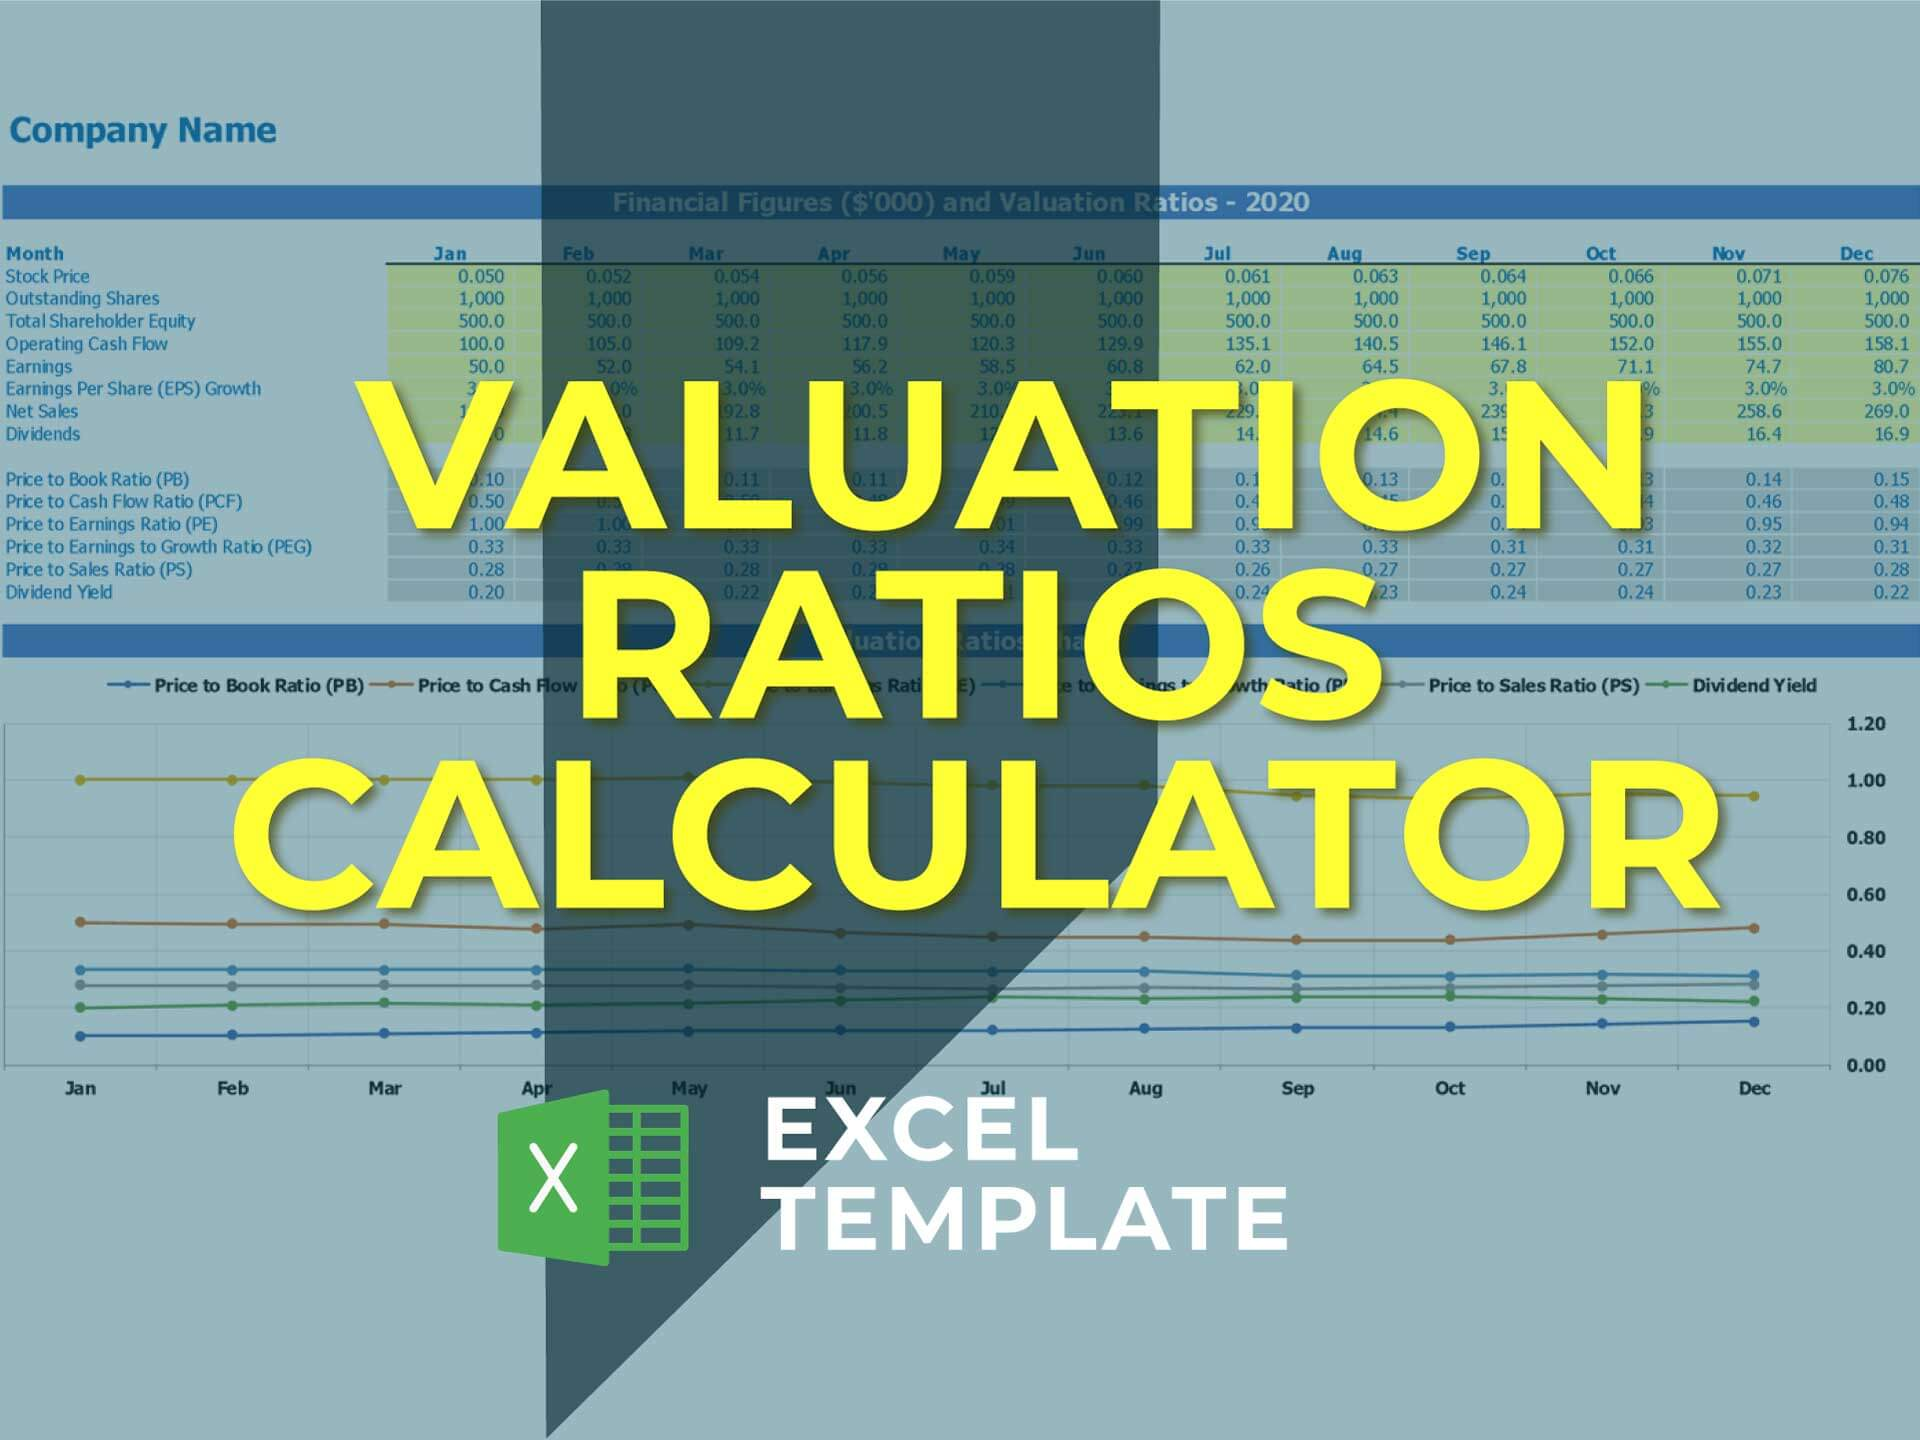 Valuation Ratios Calculator